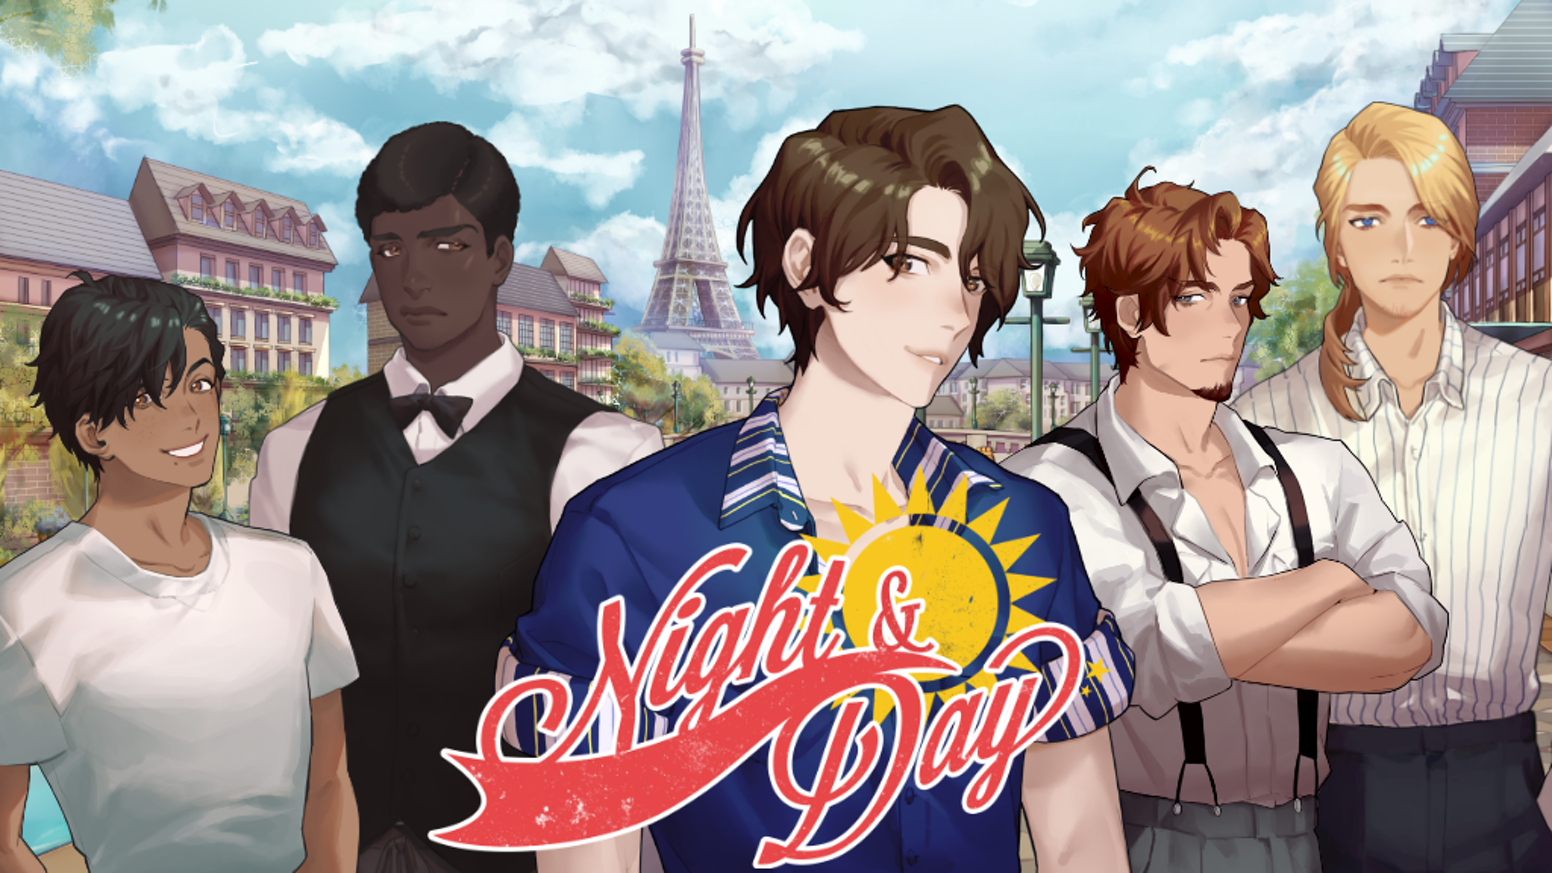 A BL dating sim Visual Novel about art, coming of age and jazz music.